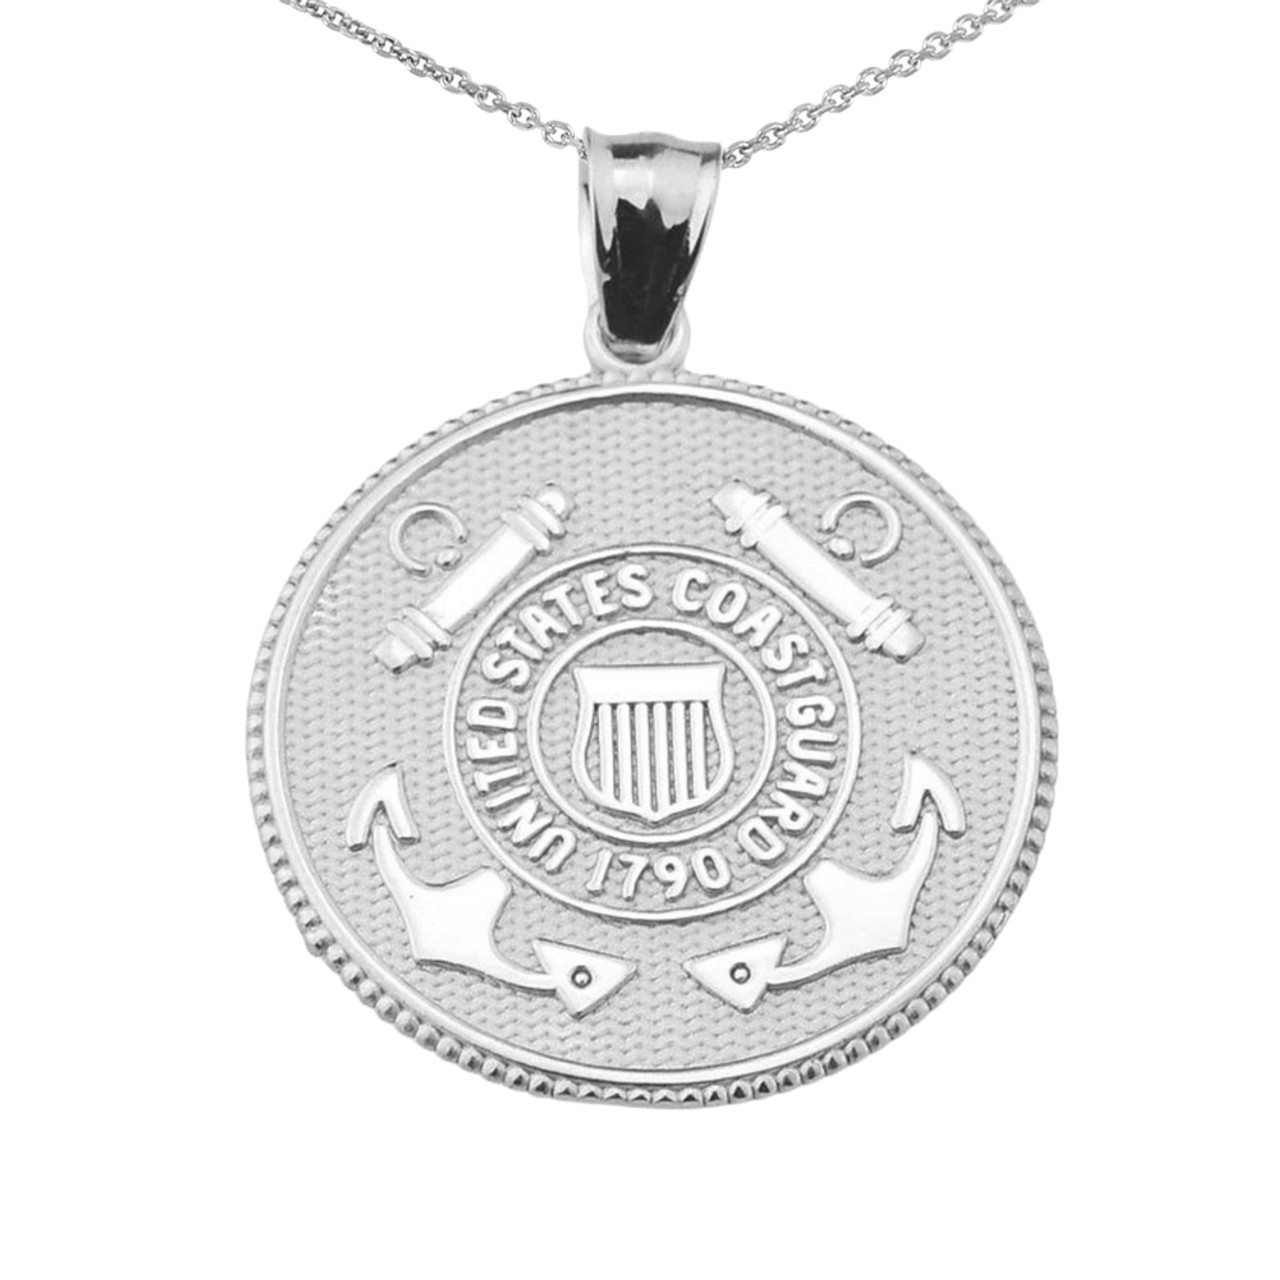 Us coast guard solid white gold disk pendant necklace us coast guard solid white gold coin pendant necklace aloadofball Images